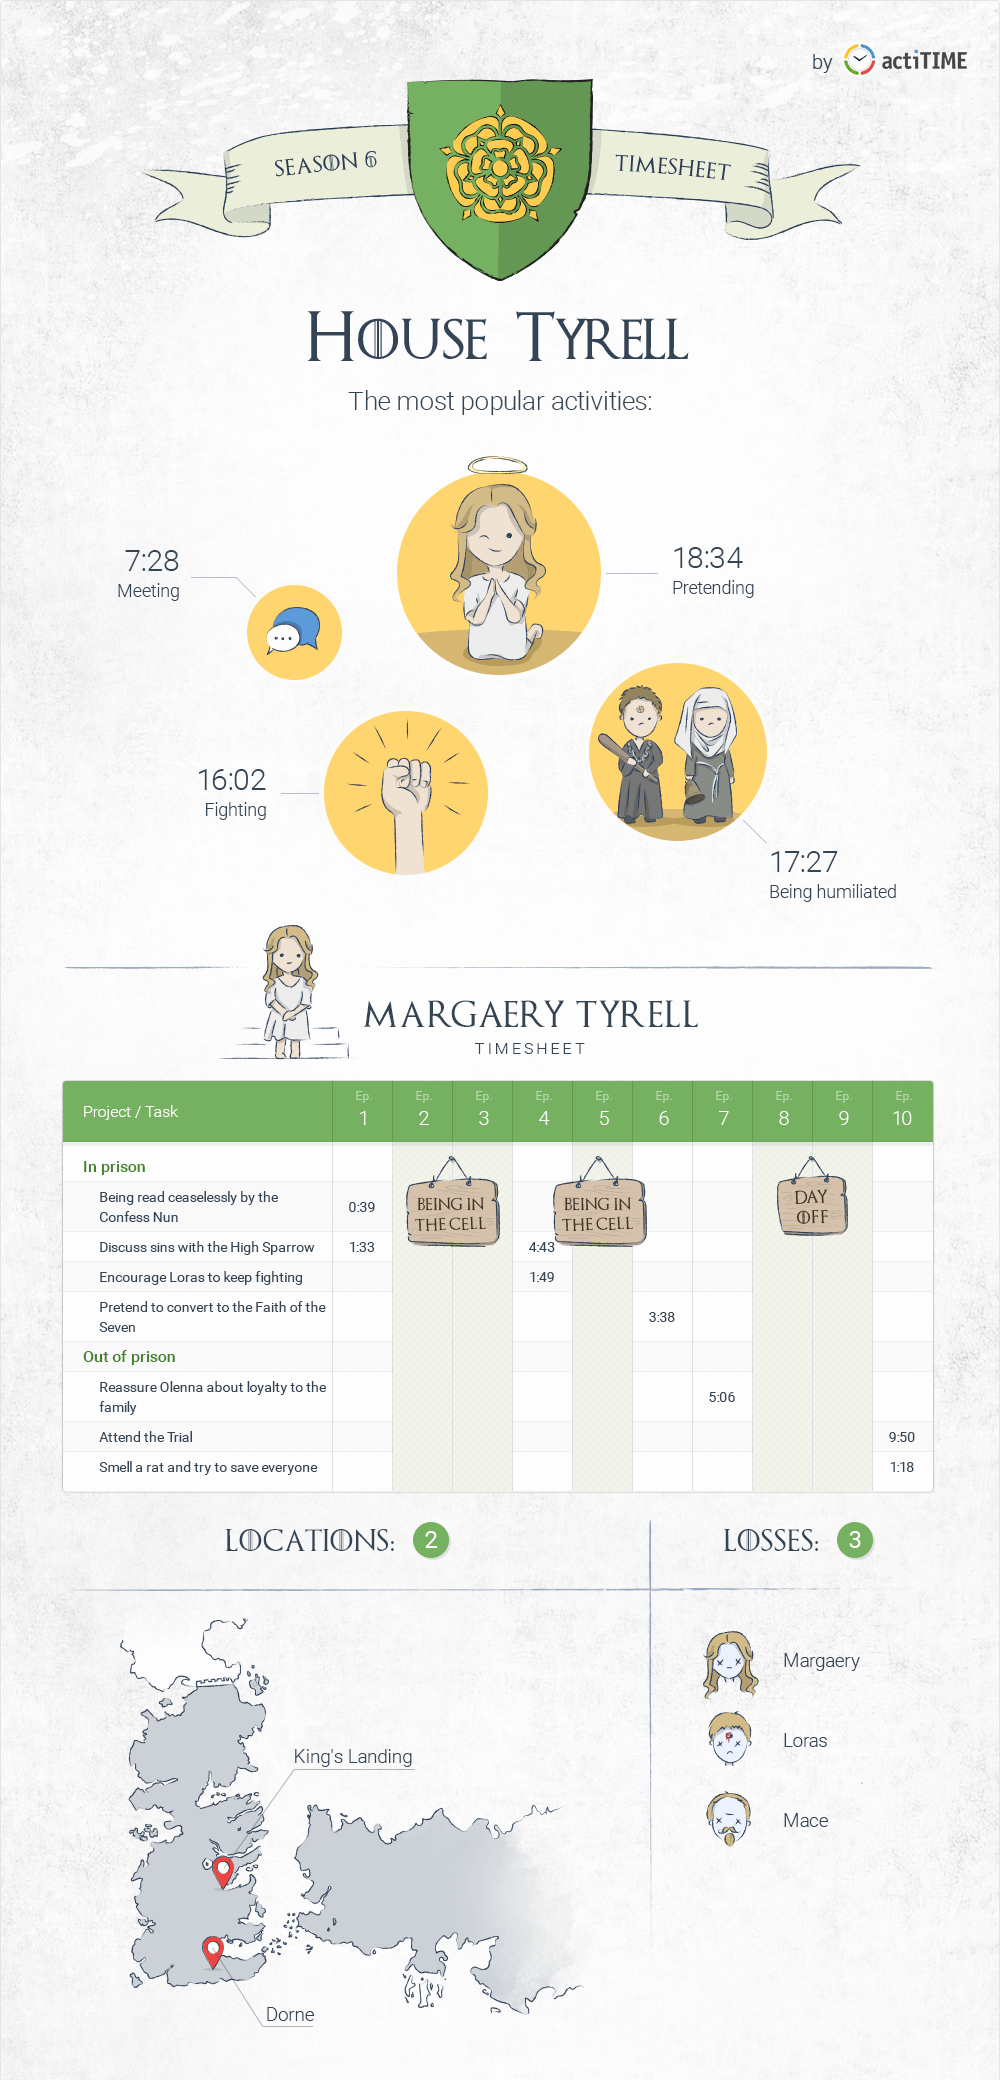 Margaery Tyrell timesheet and statistics